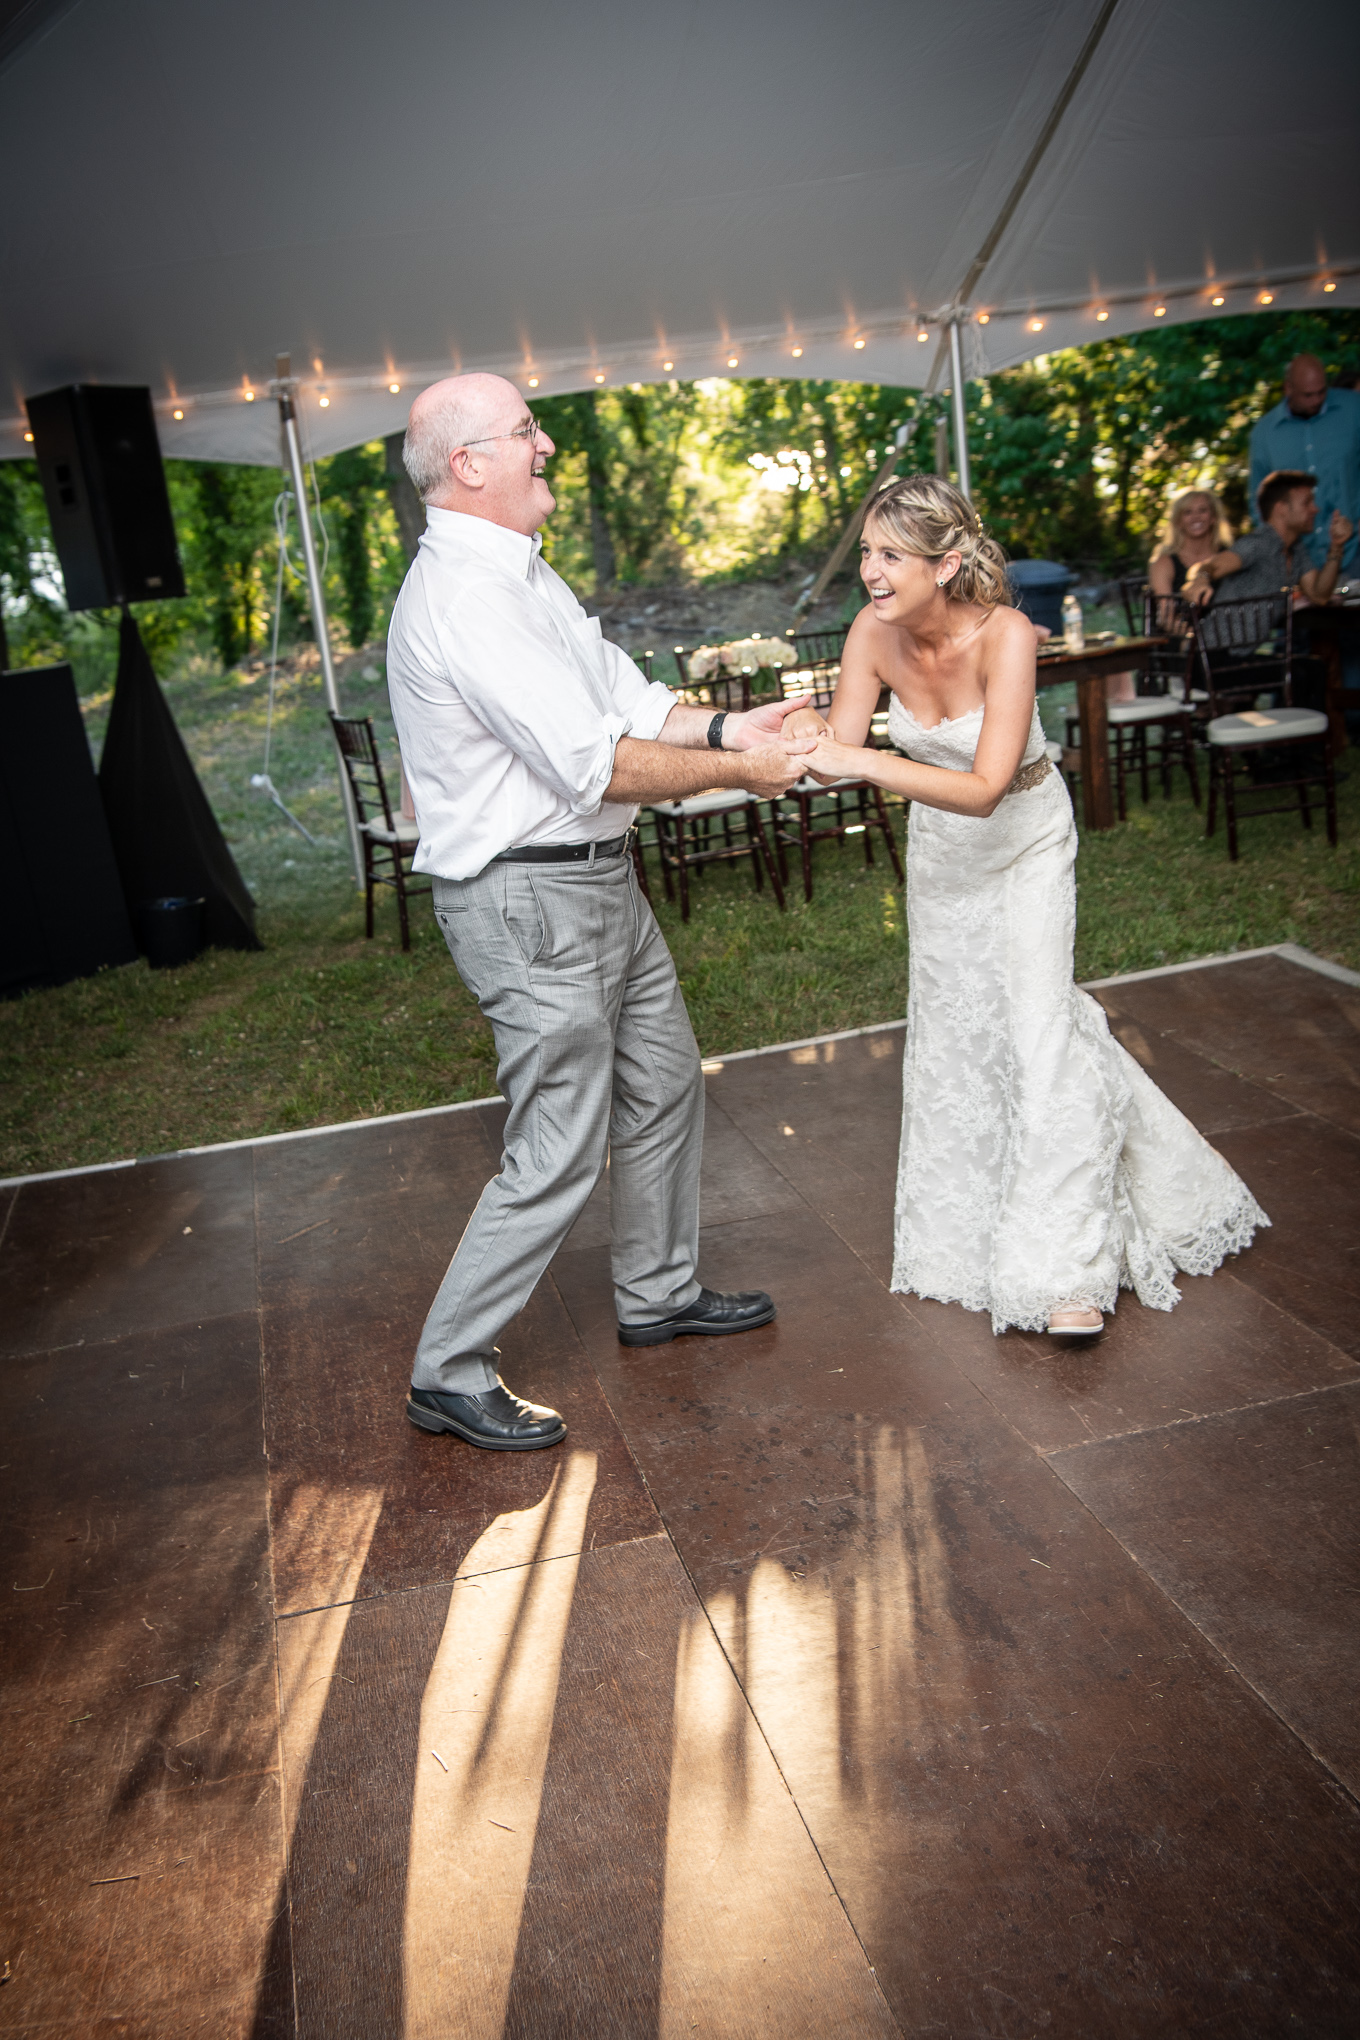 father and bride laughing and dancing